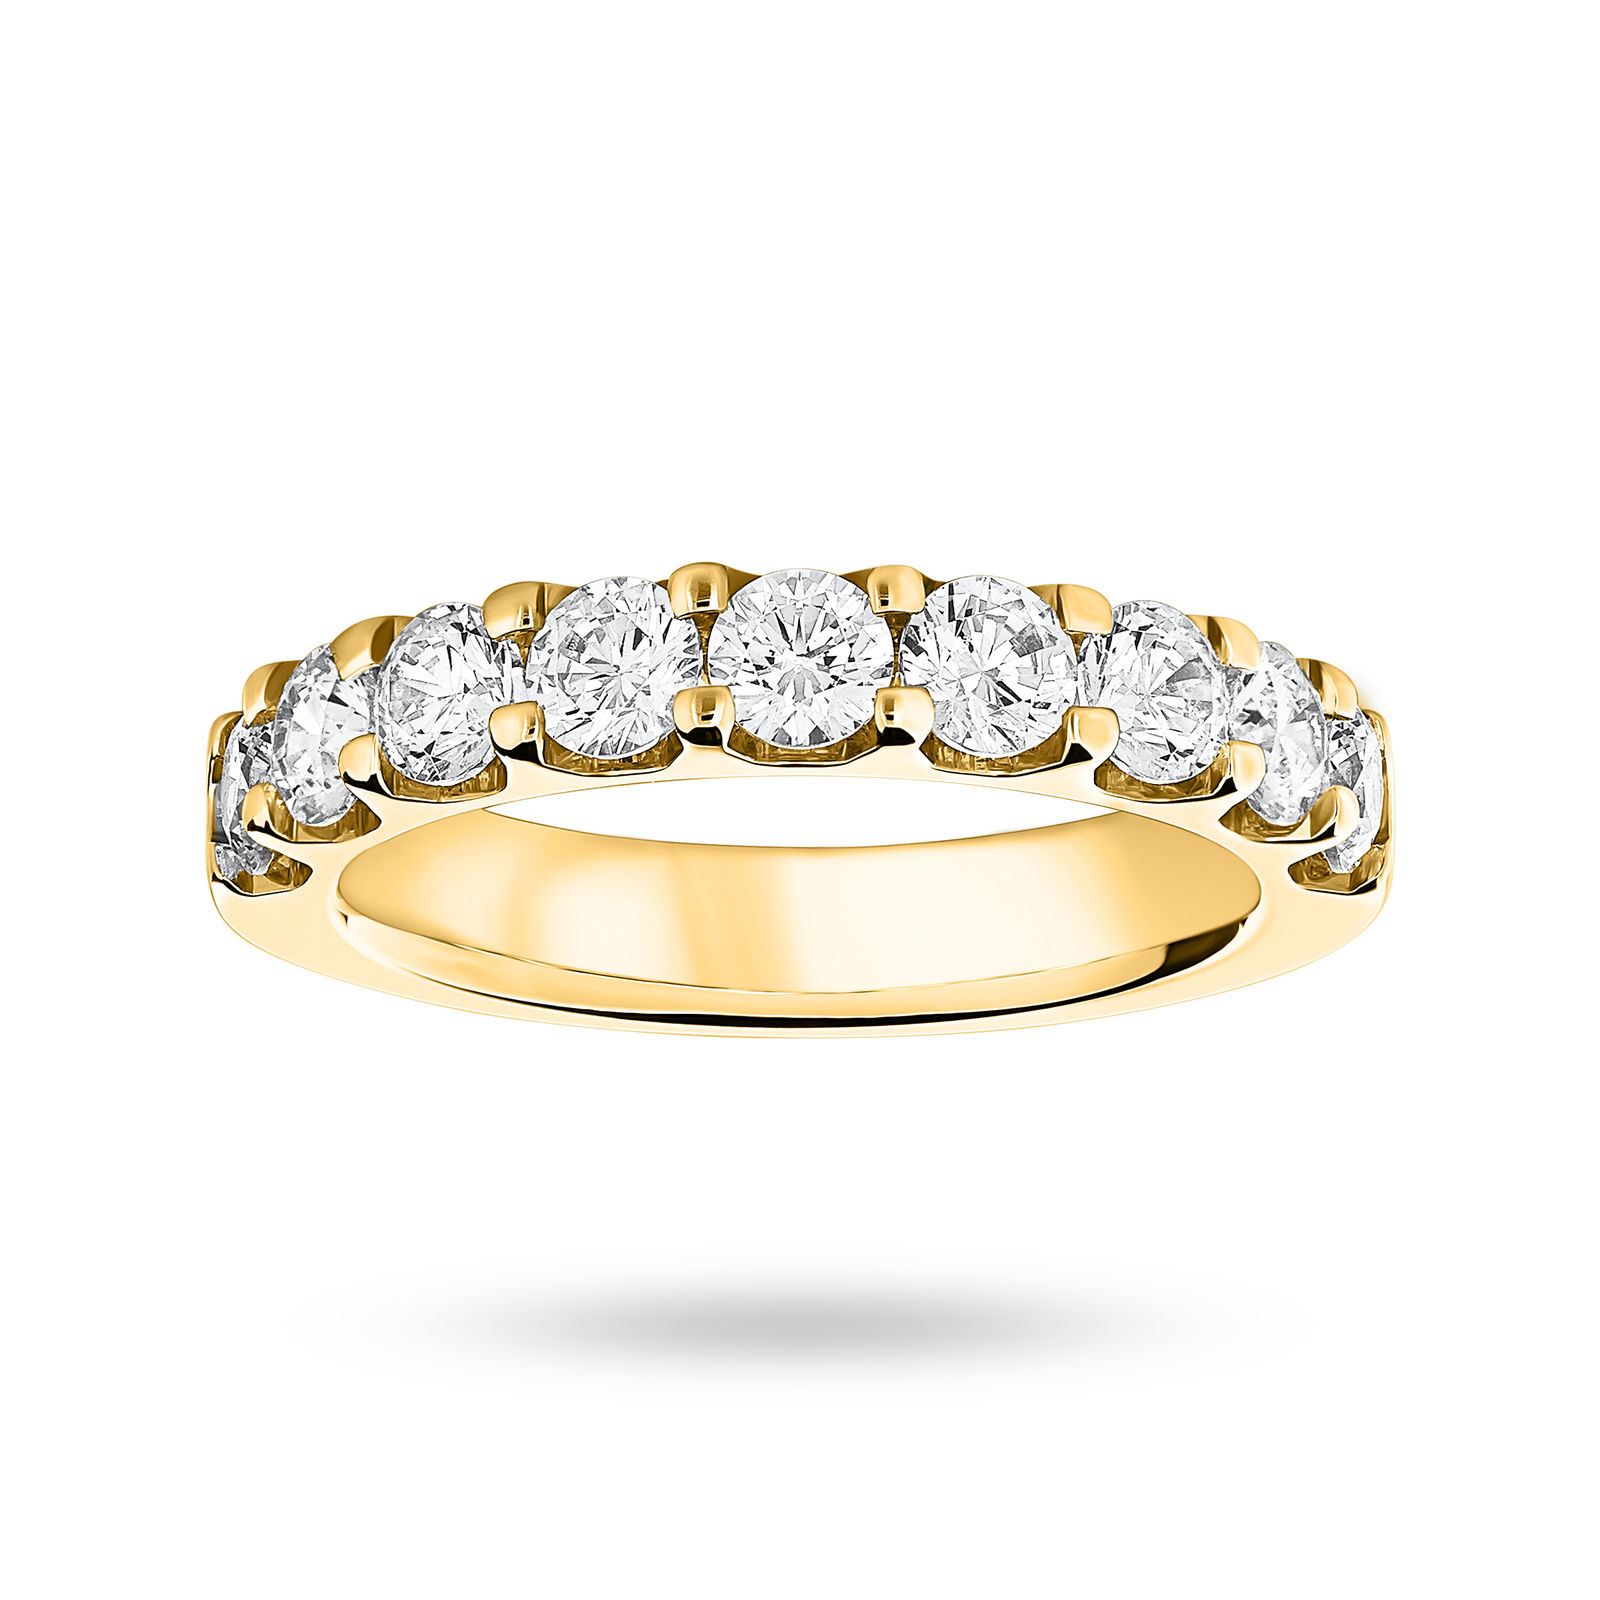 9 Carat Yellow Gold 1.45 Carat Brilliant Cut Half Eternity